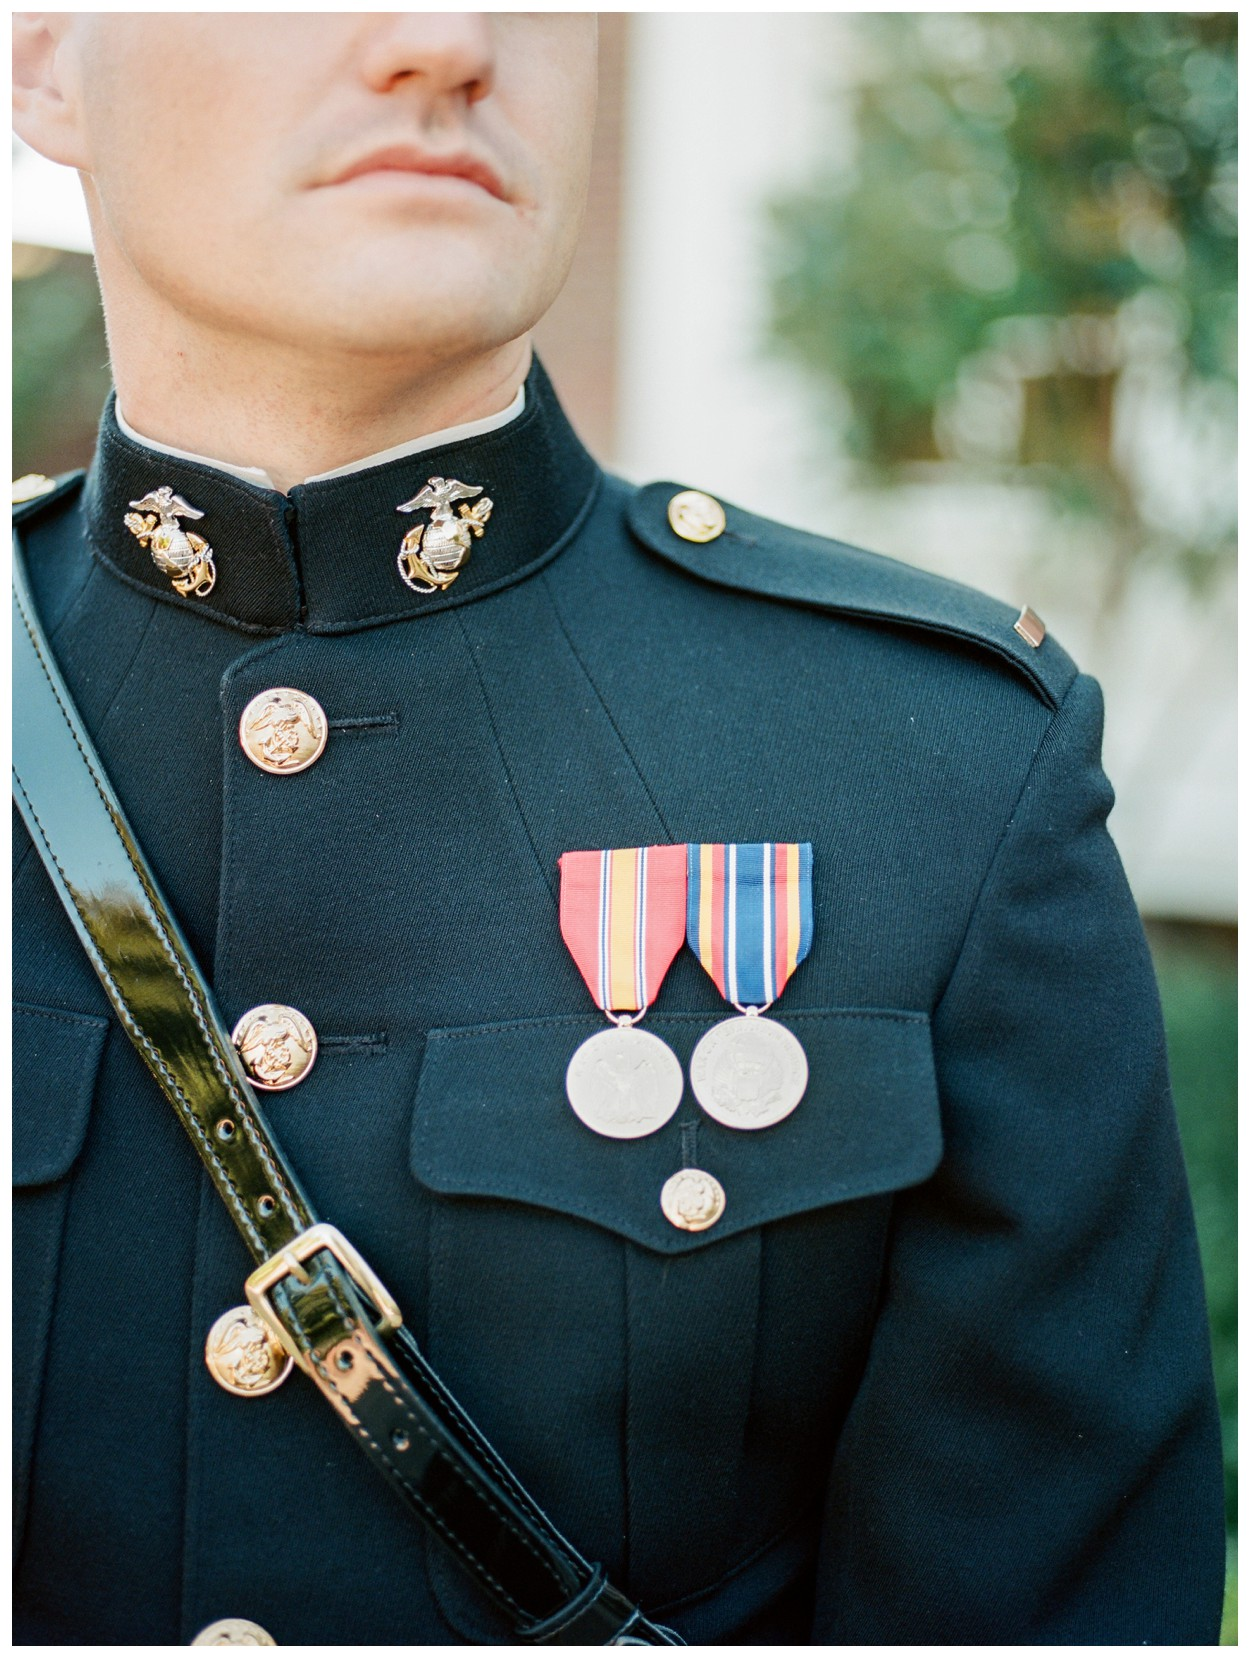 Sun drenched fall wedding in shades of pink at Oxon Hill Manor in Maryland military groom in uniform by fine art wedding photographer Lissa Ryan Photography